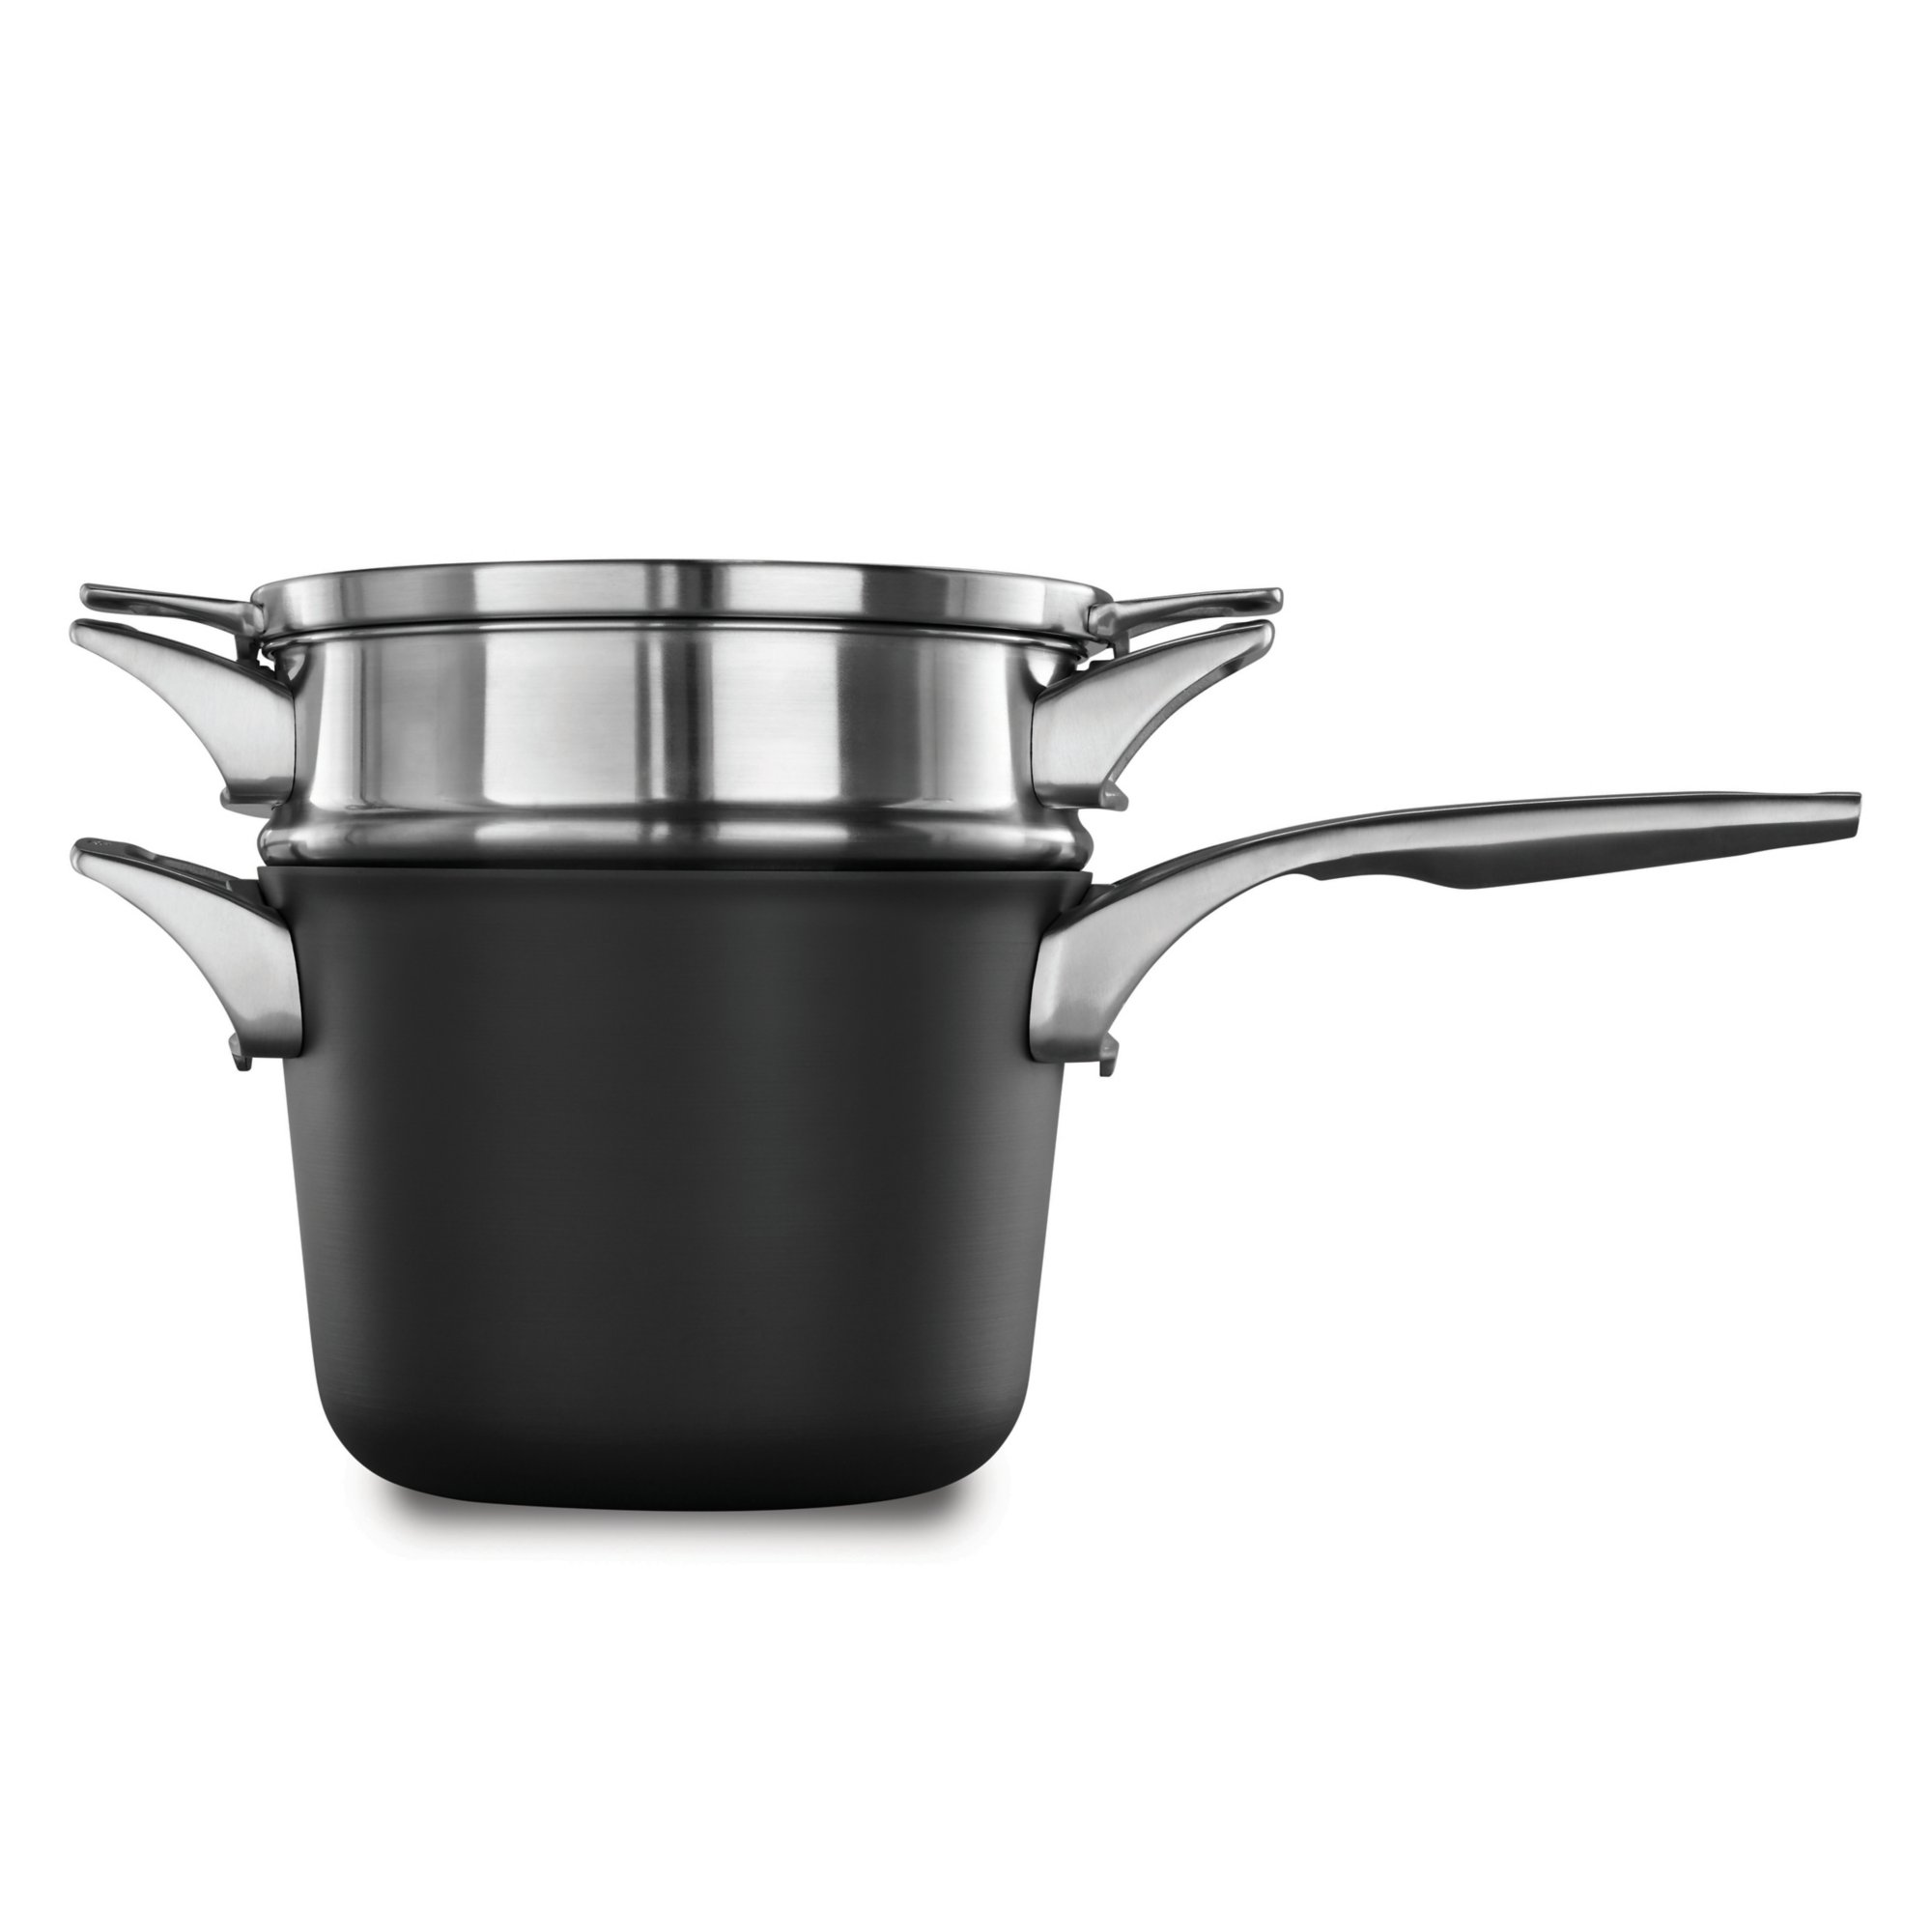 Calphalon Premier™ Space Saving Hard Anodized Nonstick 4.5 qt. Sauce Pan with Double Boiler